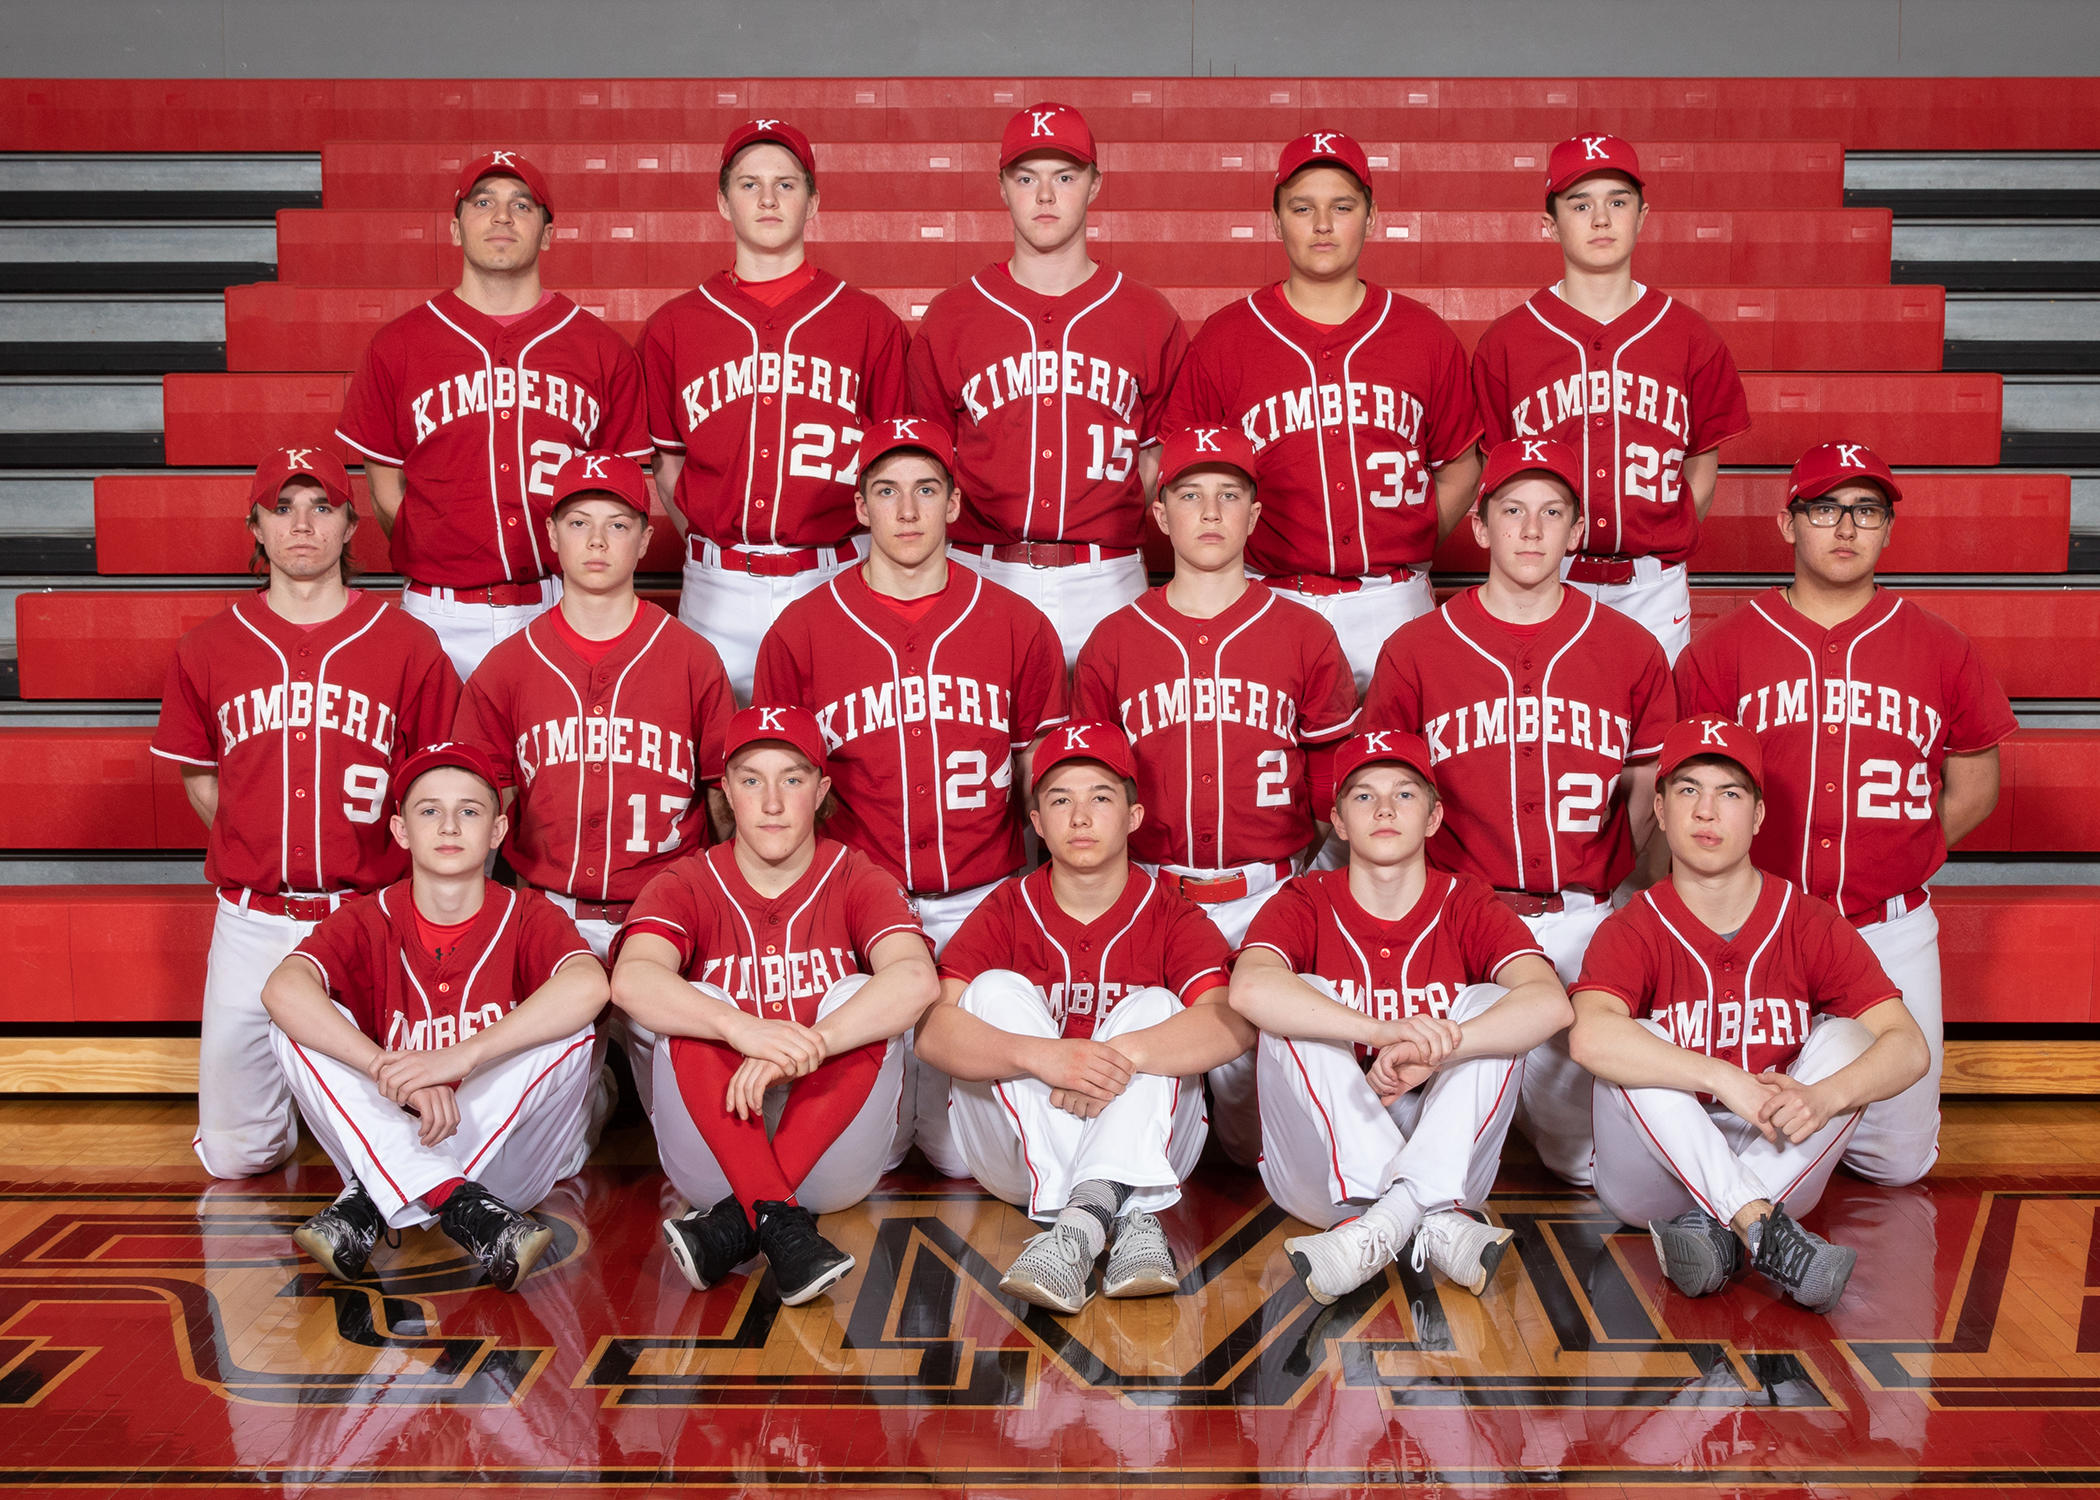 Kimberly Freshman Baseball Picture